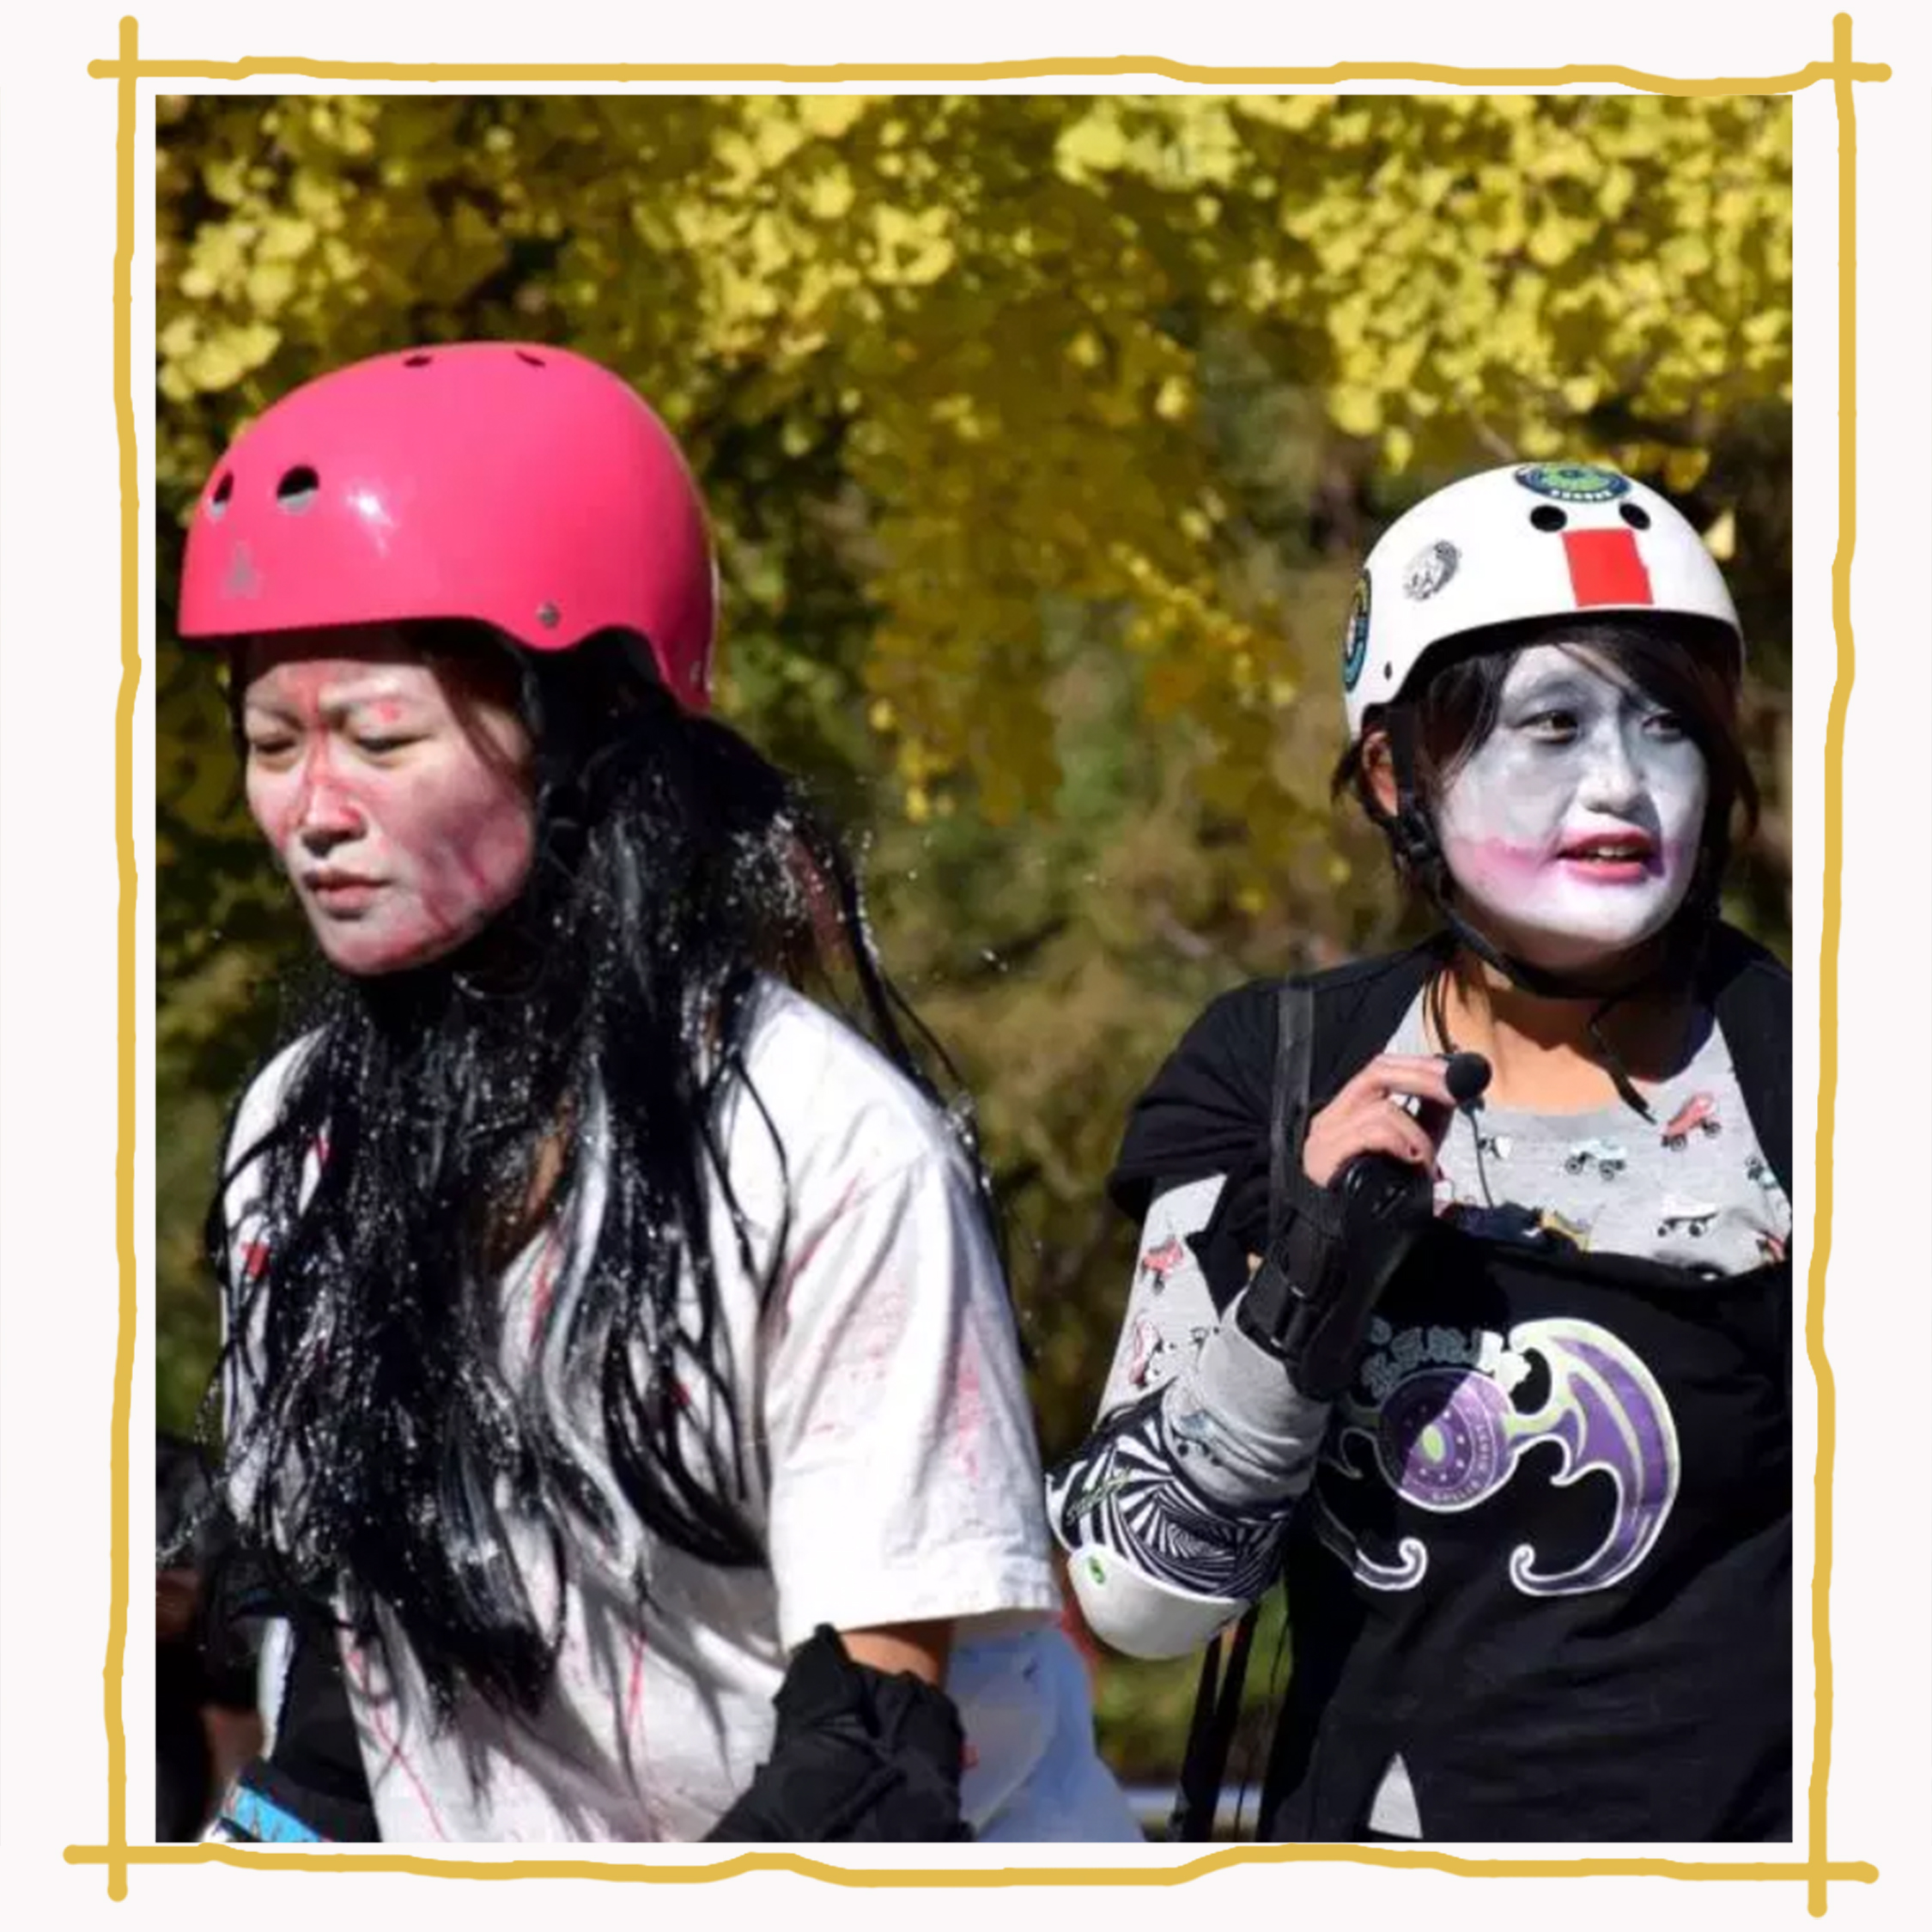 Women in self-made outfits playing the Roller Derby in Beijing  Image:  Facebook